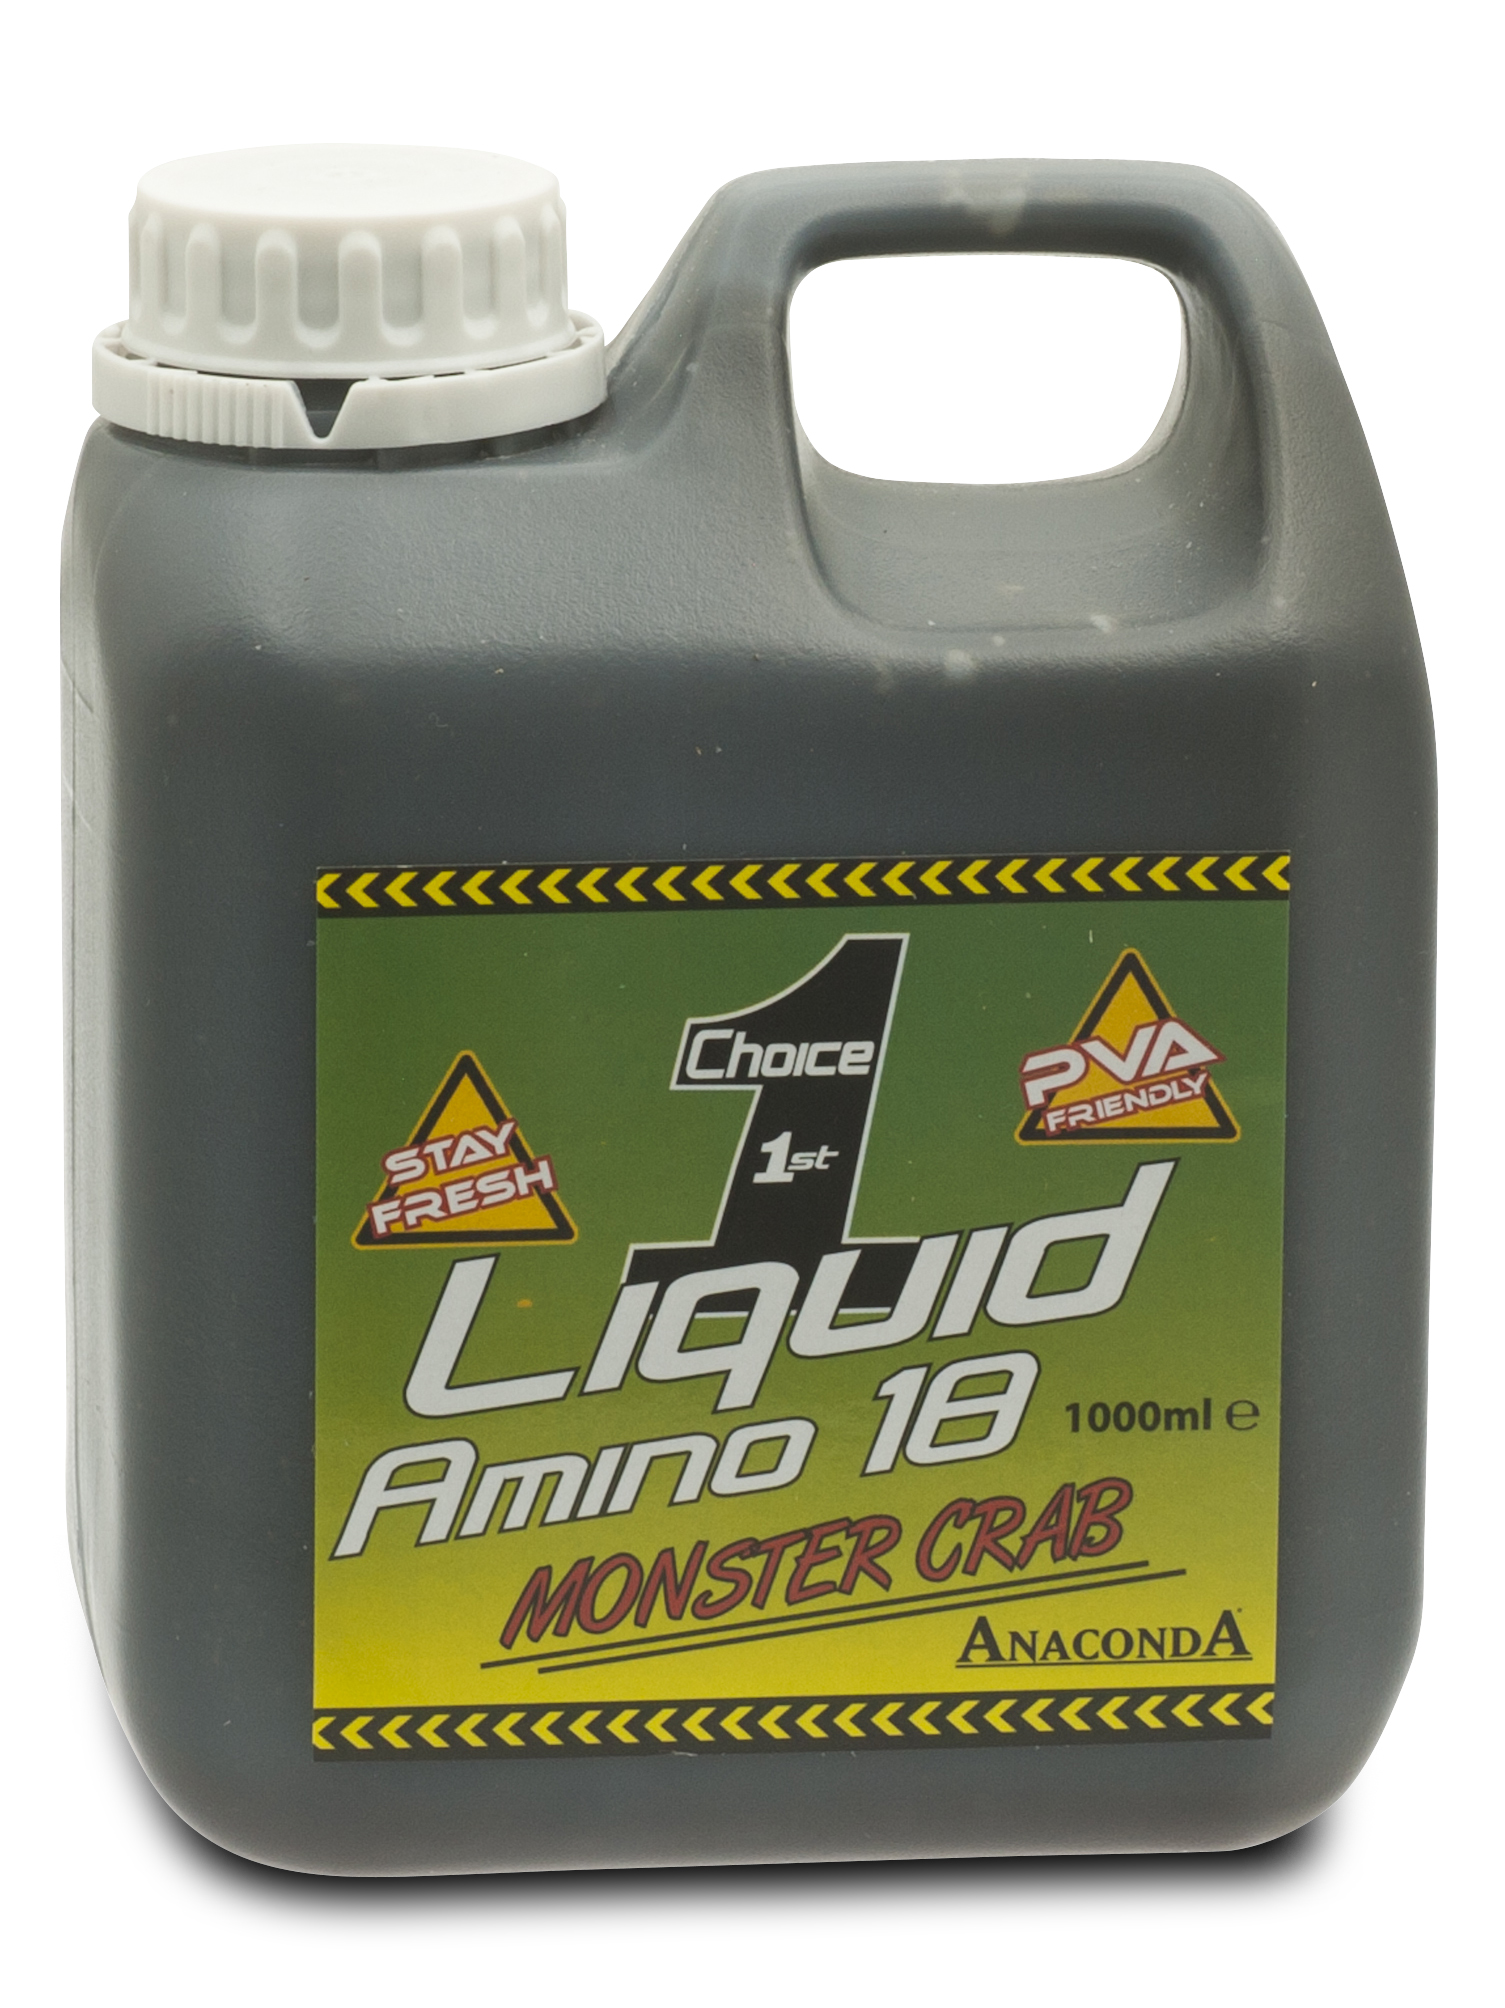 Atraktor Anaconda Liquids Amino 18, 1000ml - Monster crab